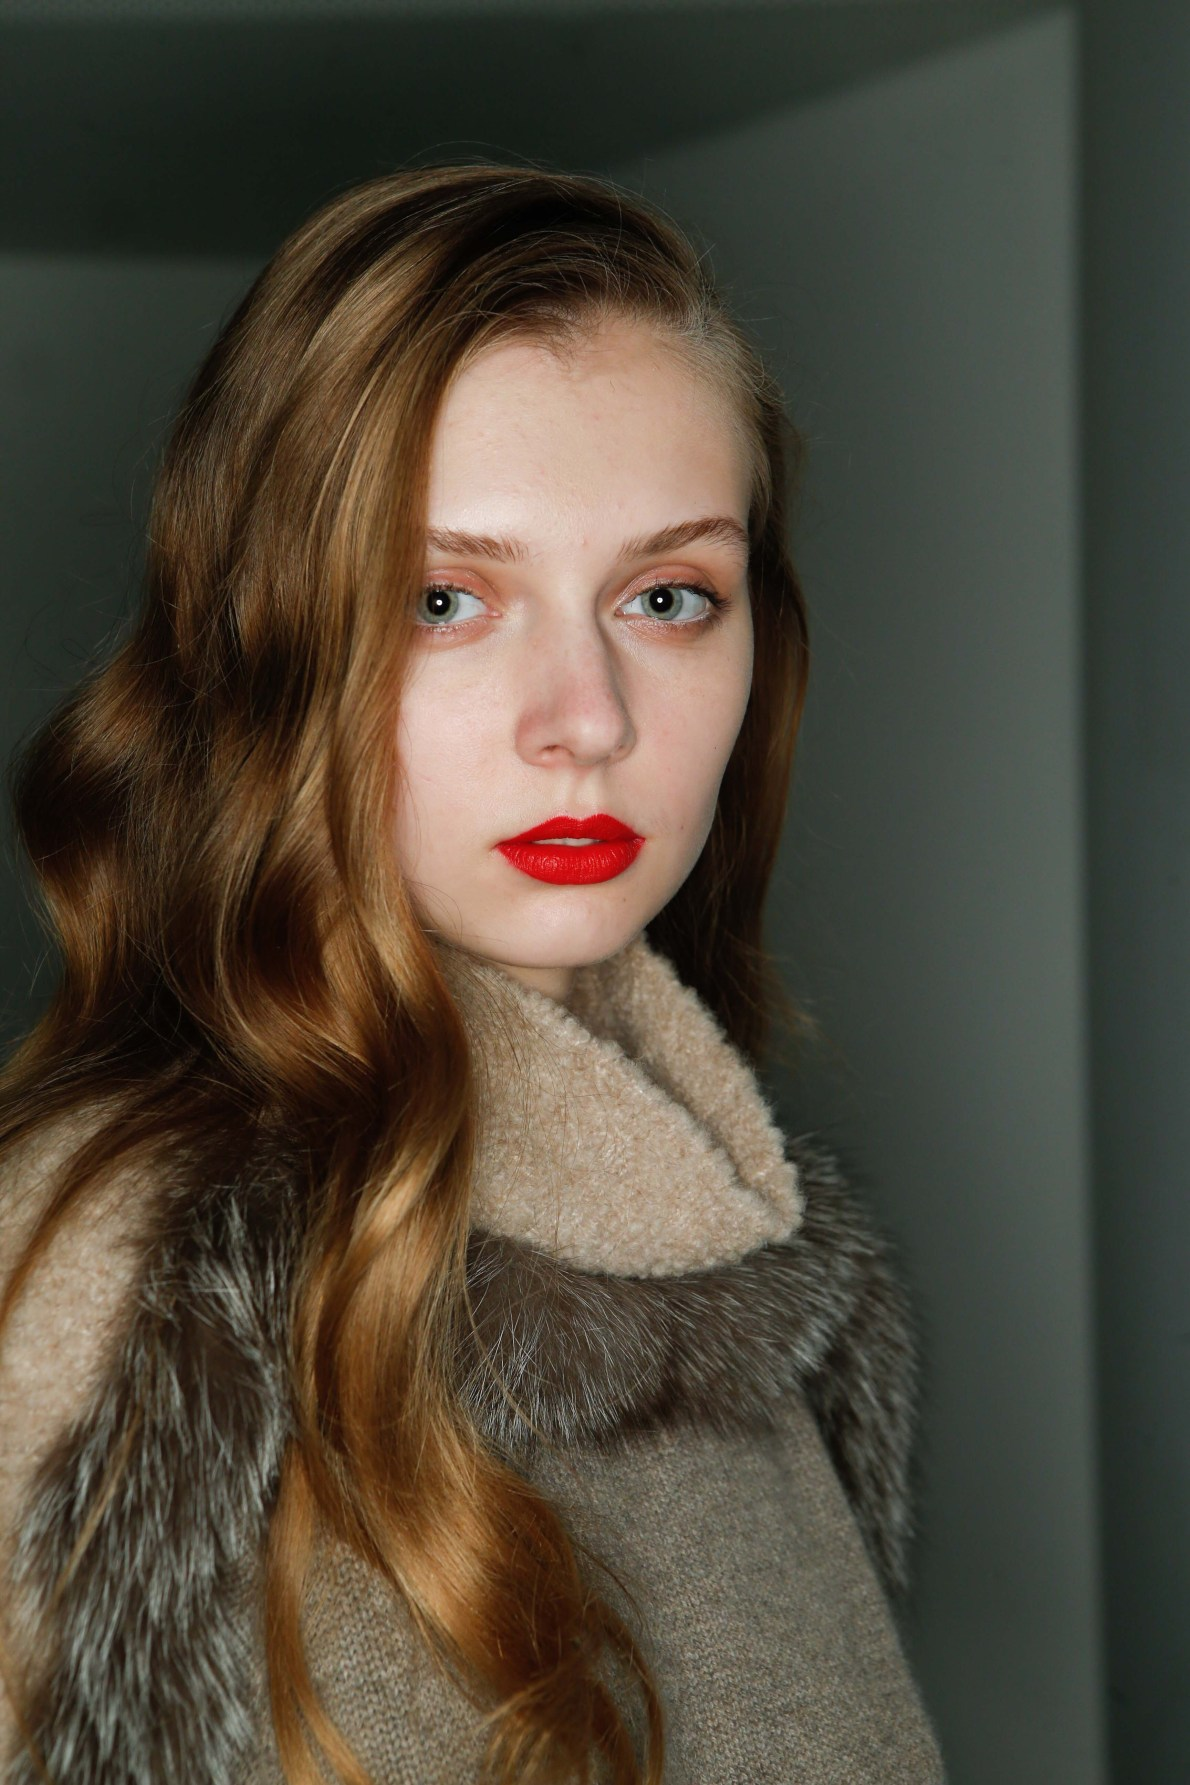 front view of a woman with red lipstick and honey blonde hair, sun kissed brown waves